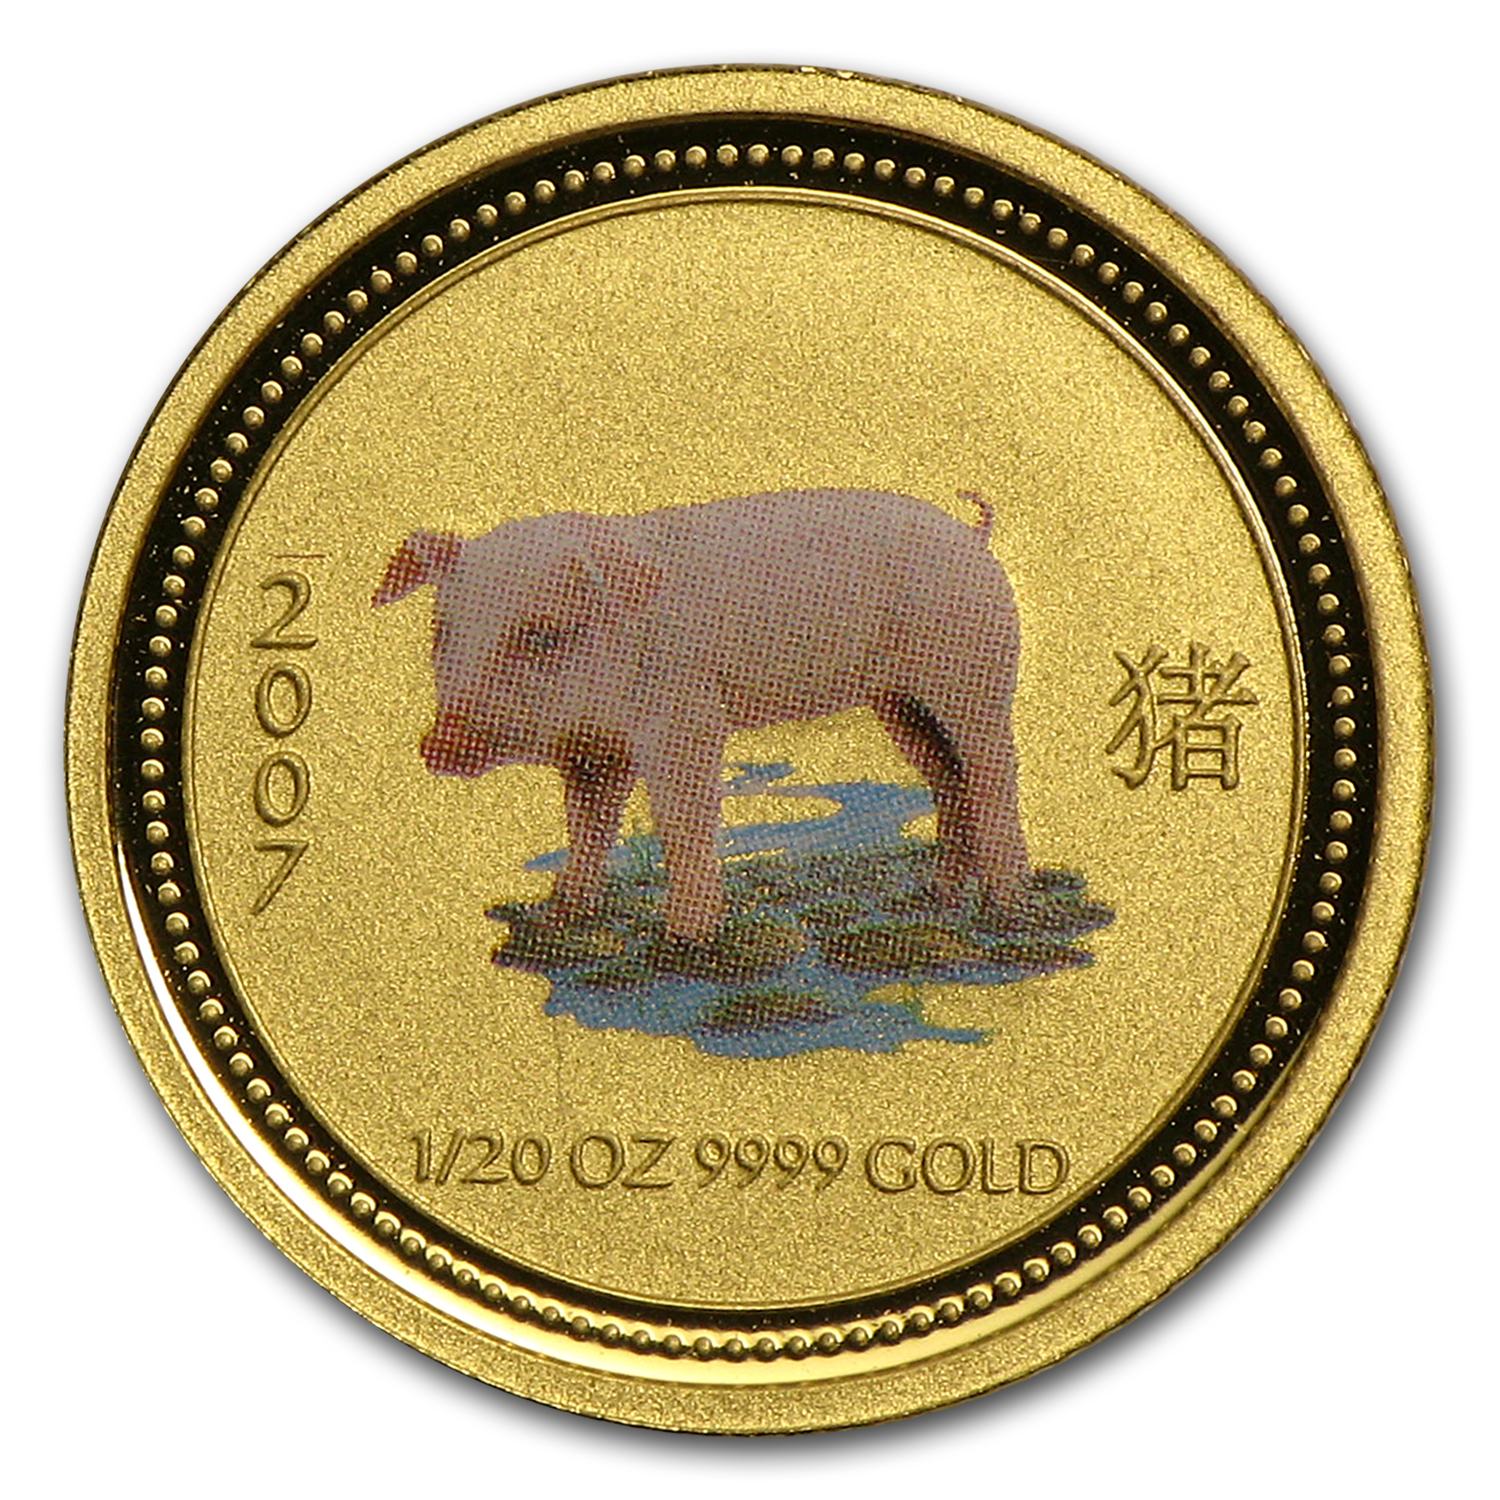 2007 1/20 oz Gold Year of the Pig Lunar (Series I) Colorized